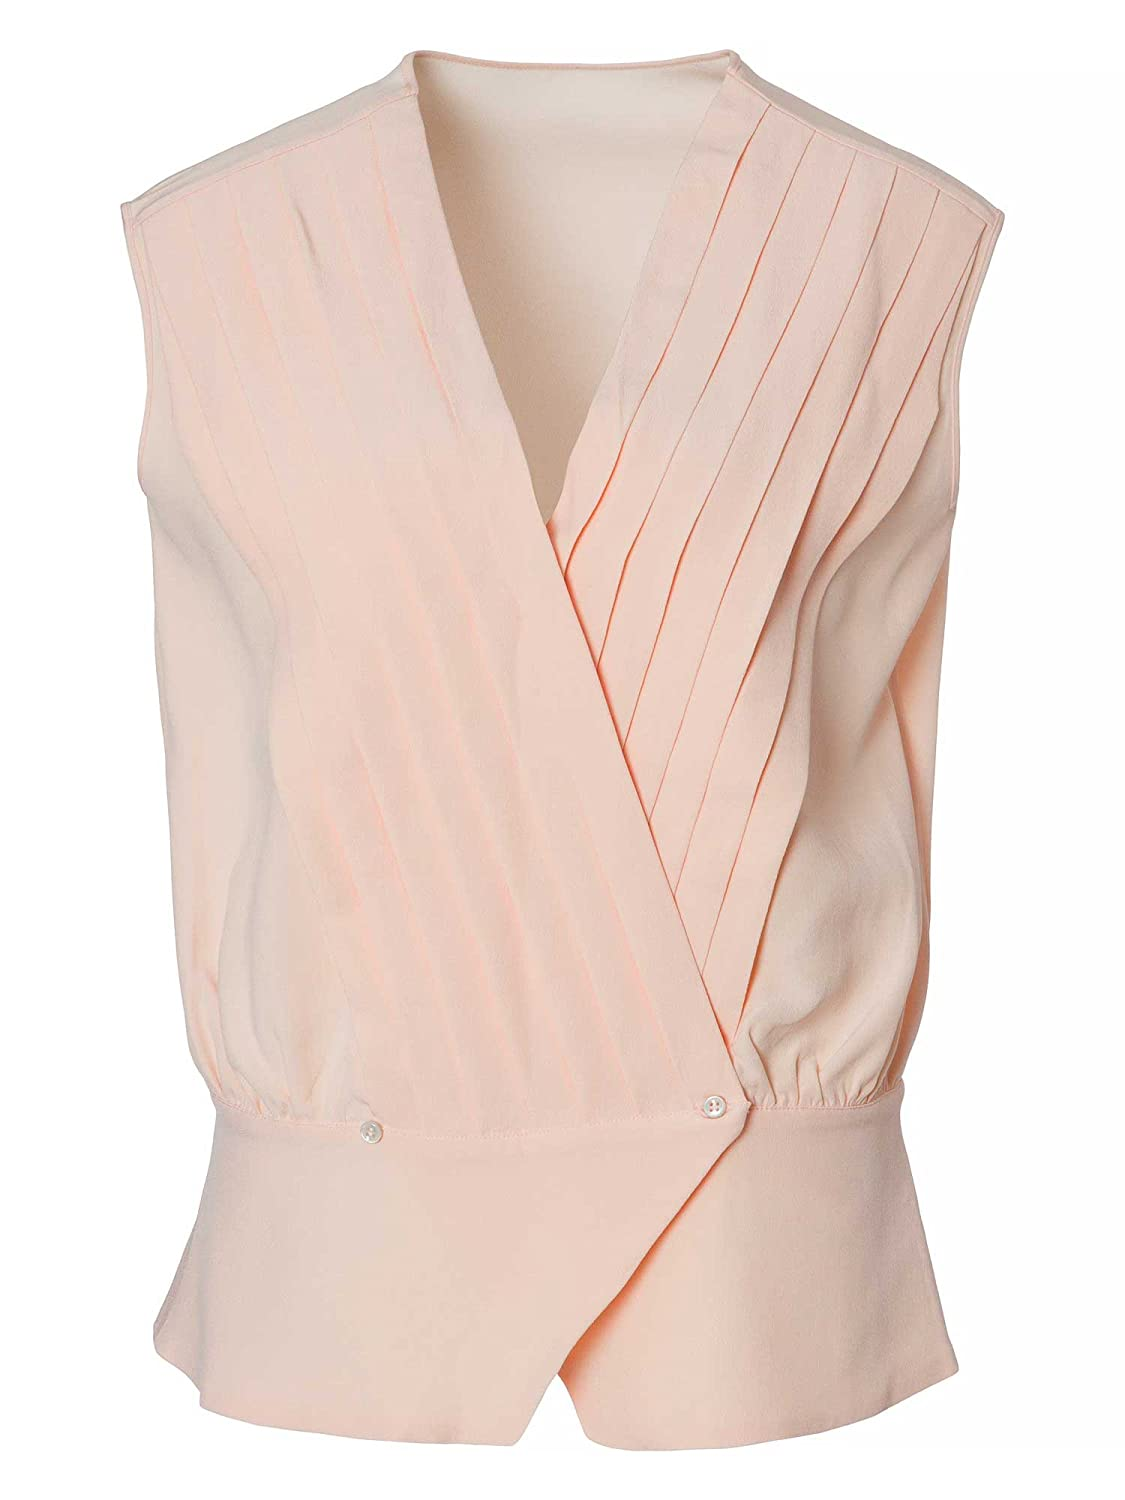 TRUSSARDI Women blouse top